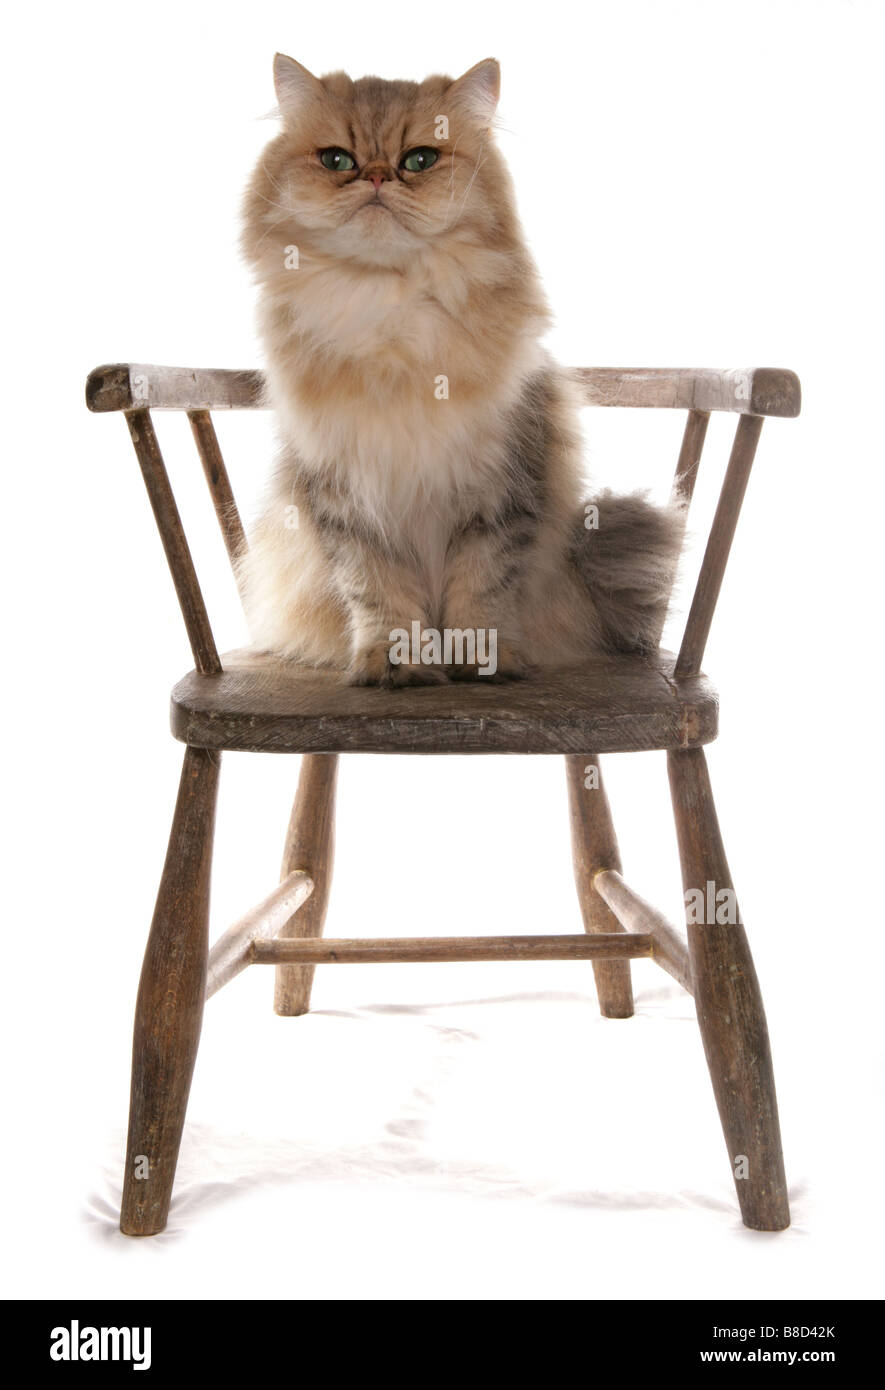 Persian Golden Cat Sitting on a chair Studio Stock Photo